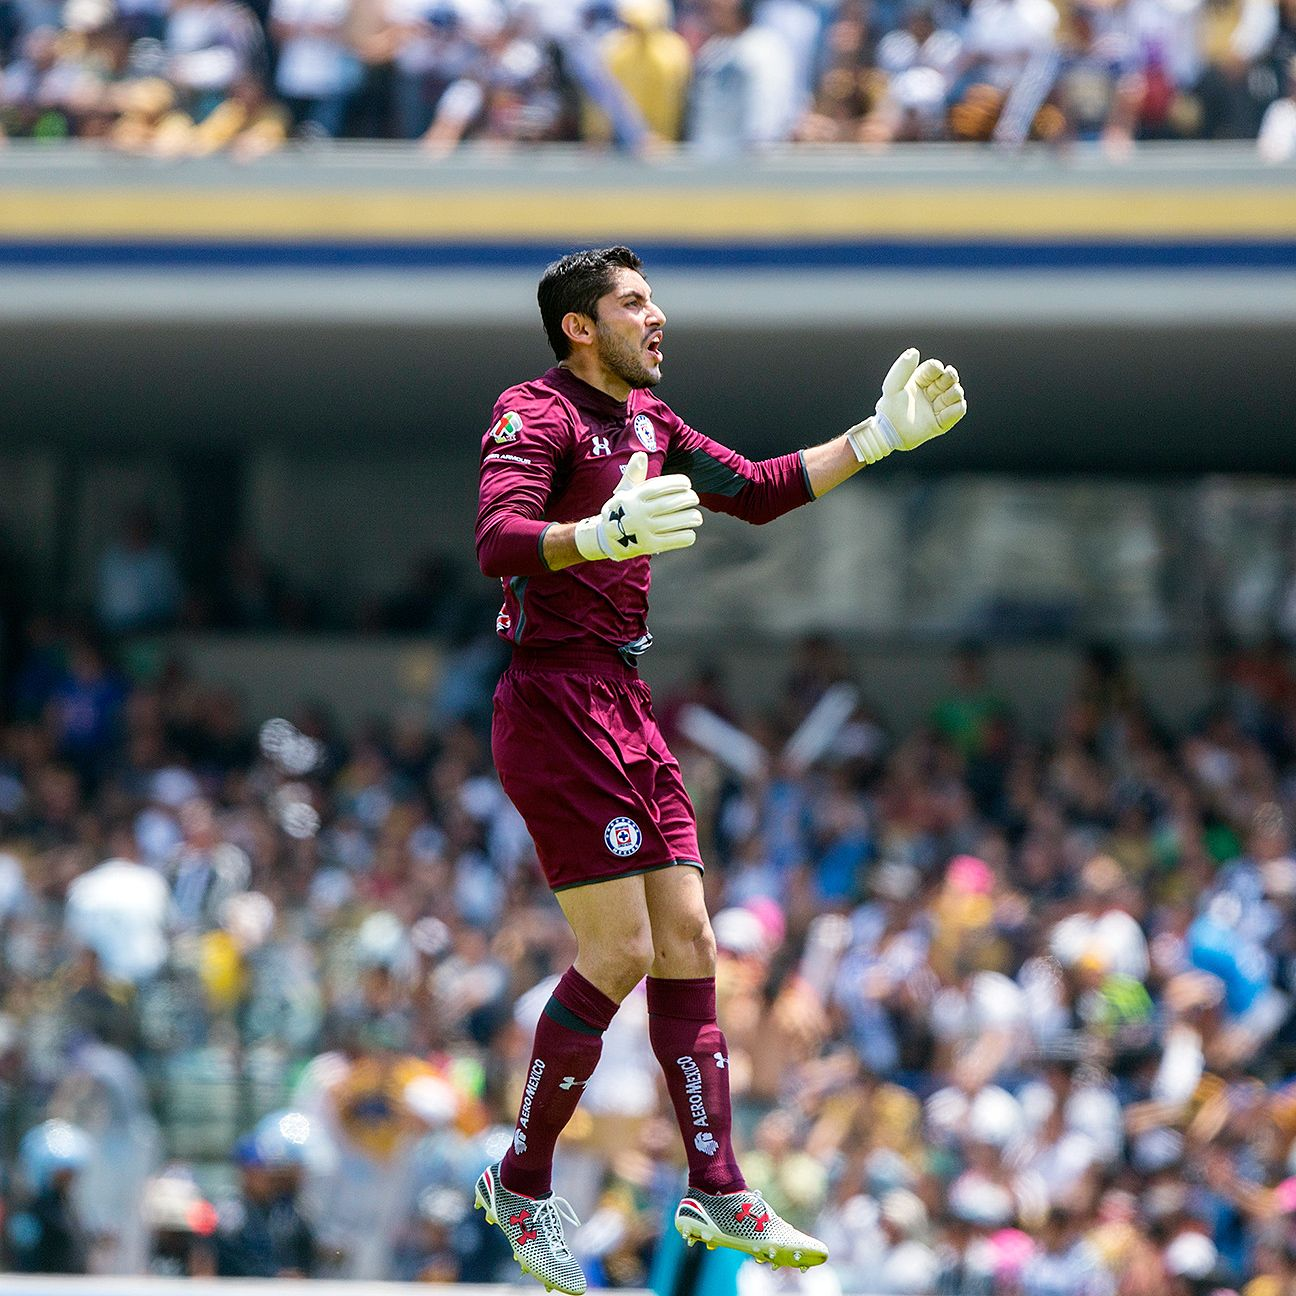 Jesus Corona and Cruz Azul picked up a big momentum-building win at Pumas on Sunday.